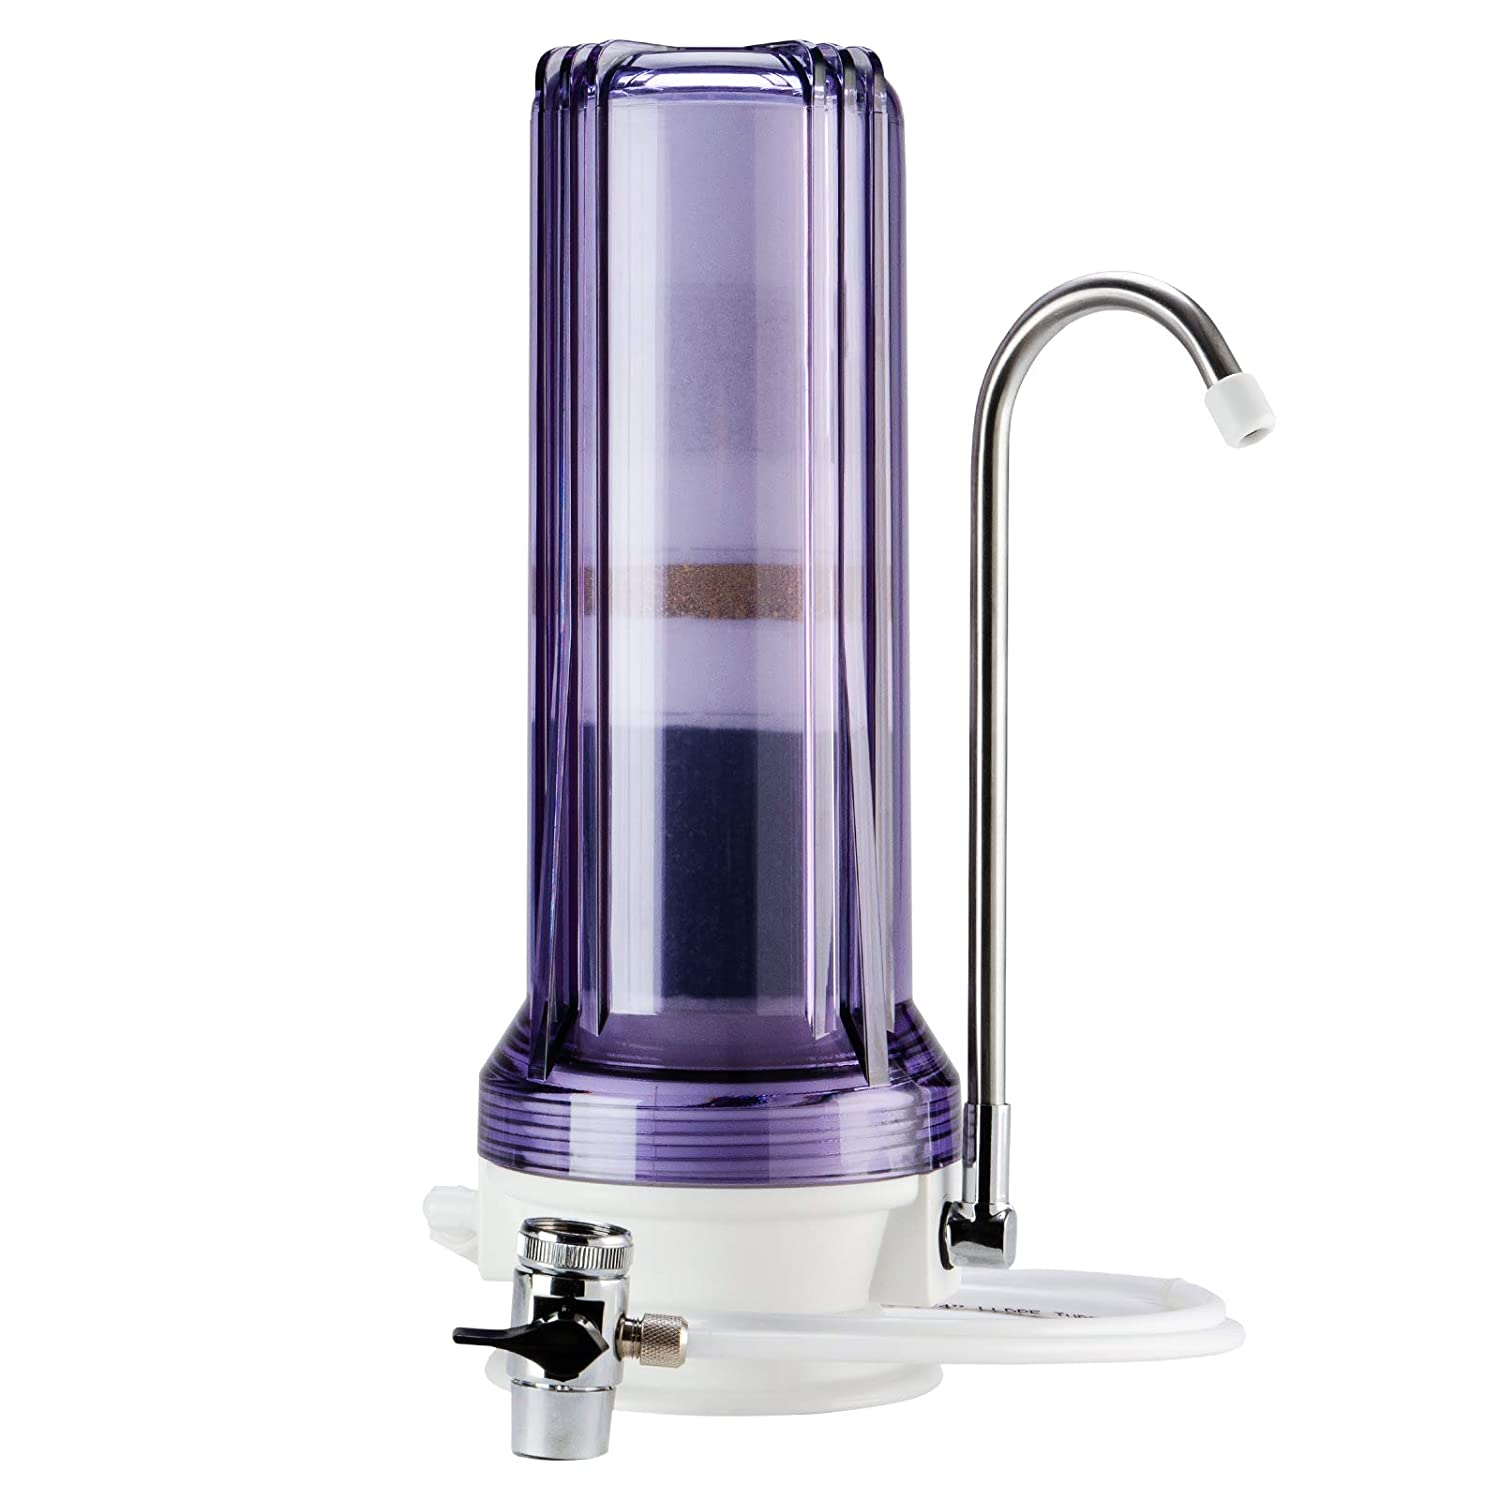 iSpring CKC1 countertop water filter White Housing with Carbon